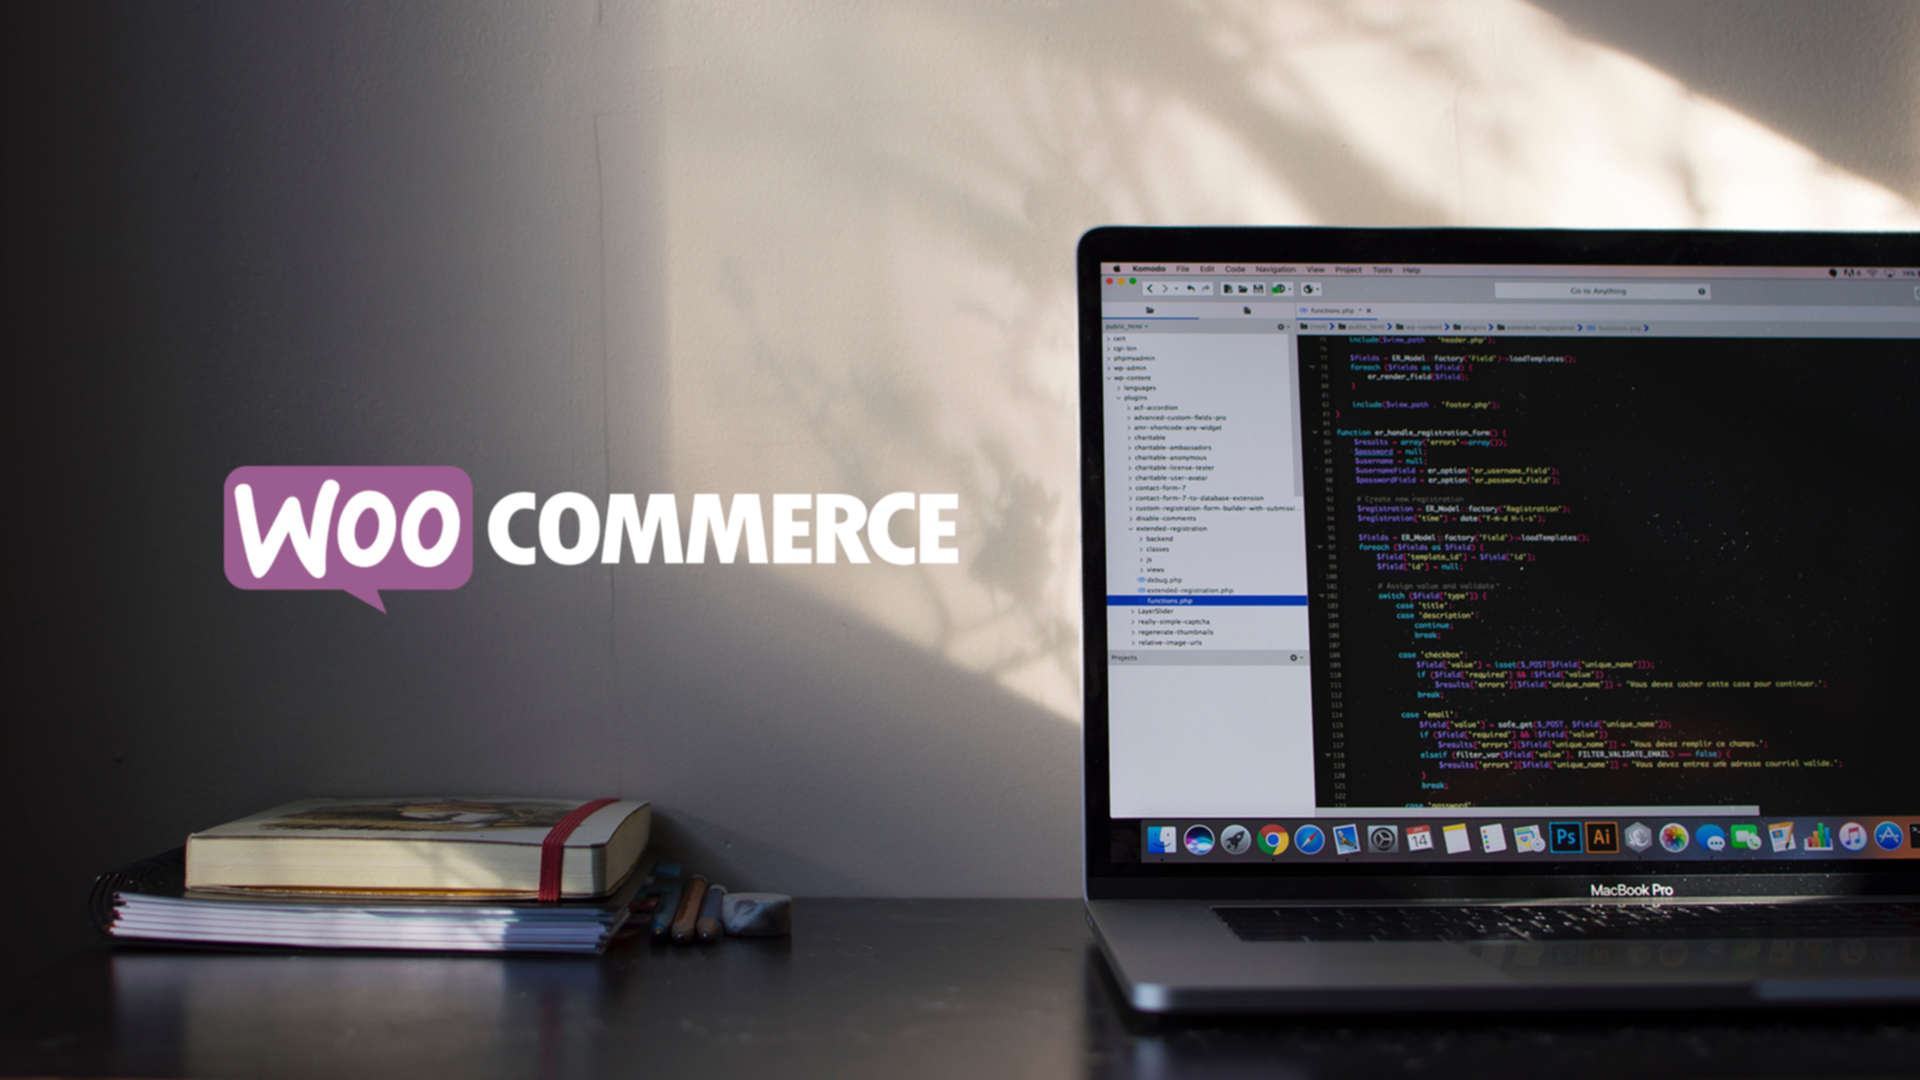 How can you make WooCommerce fast? 12 tips from a Woo Expert